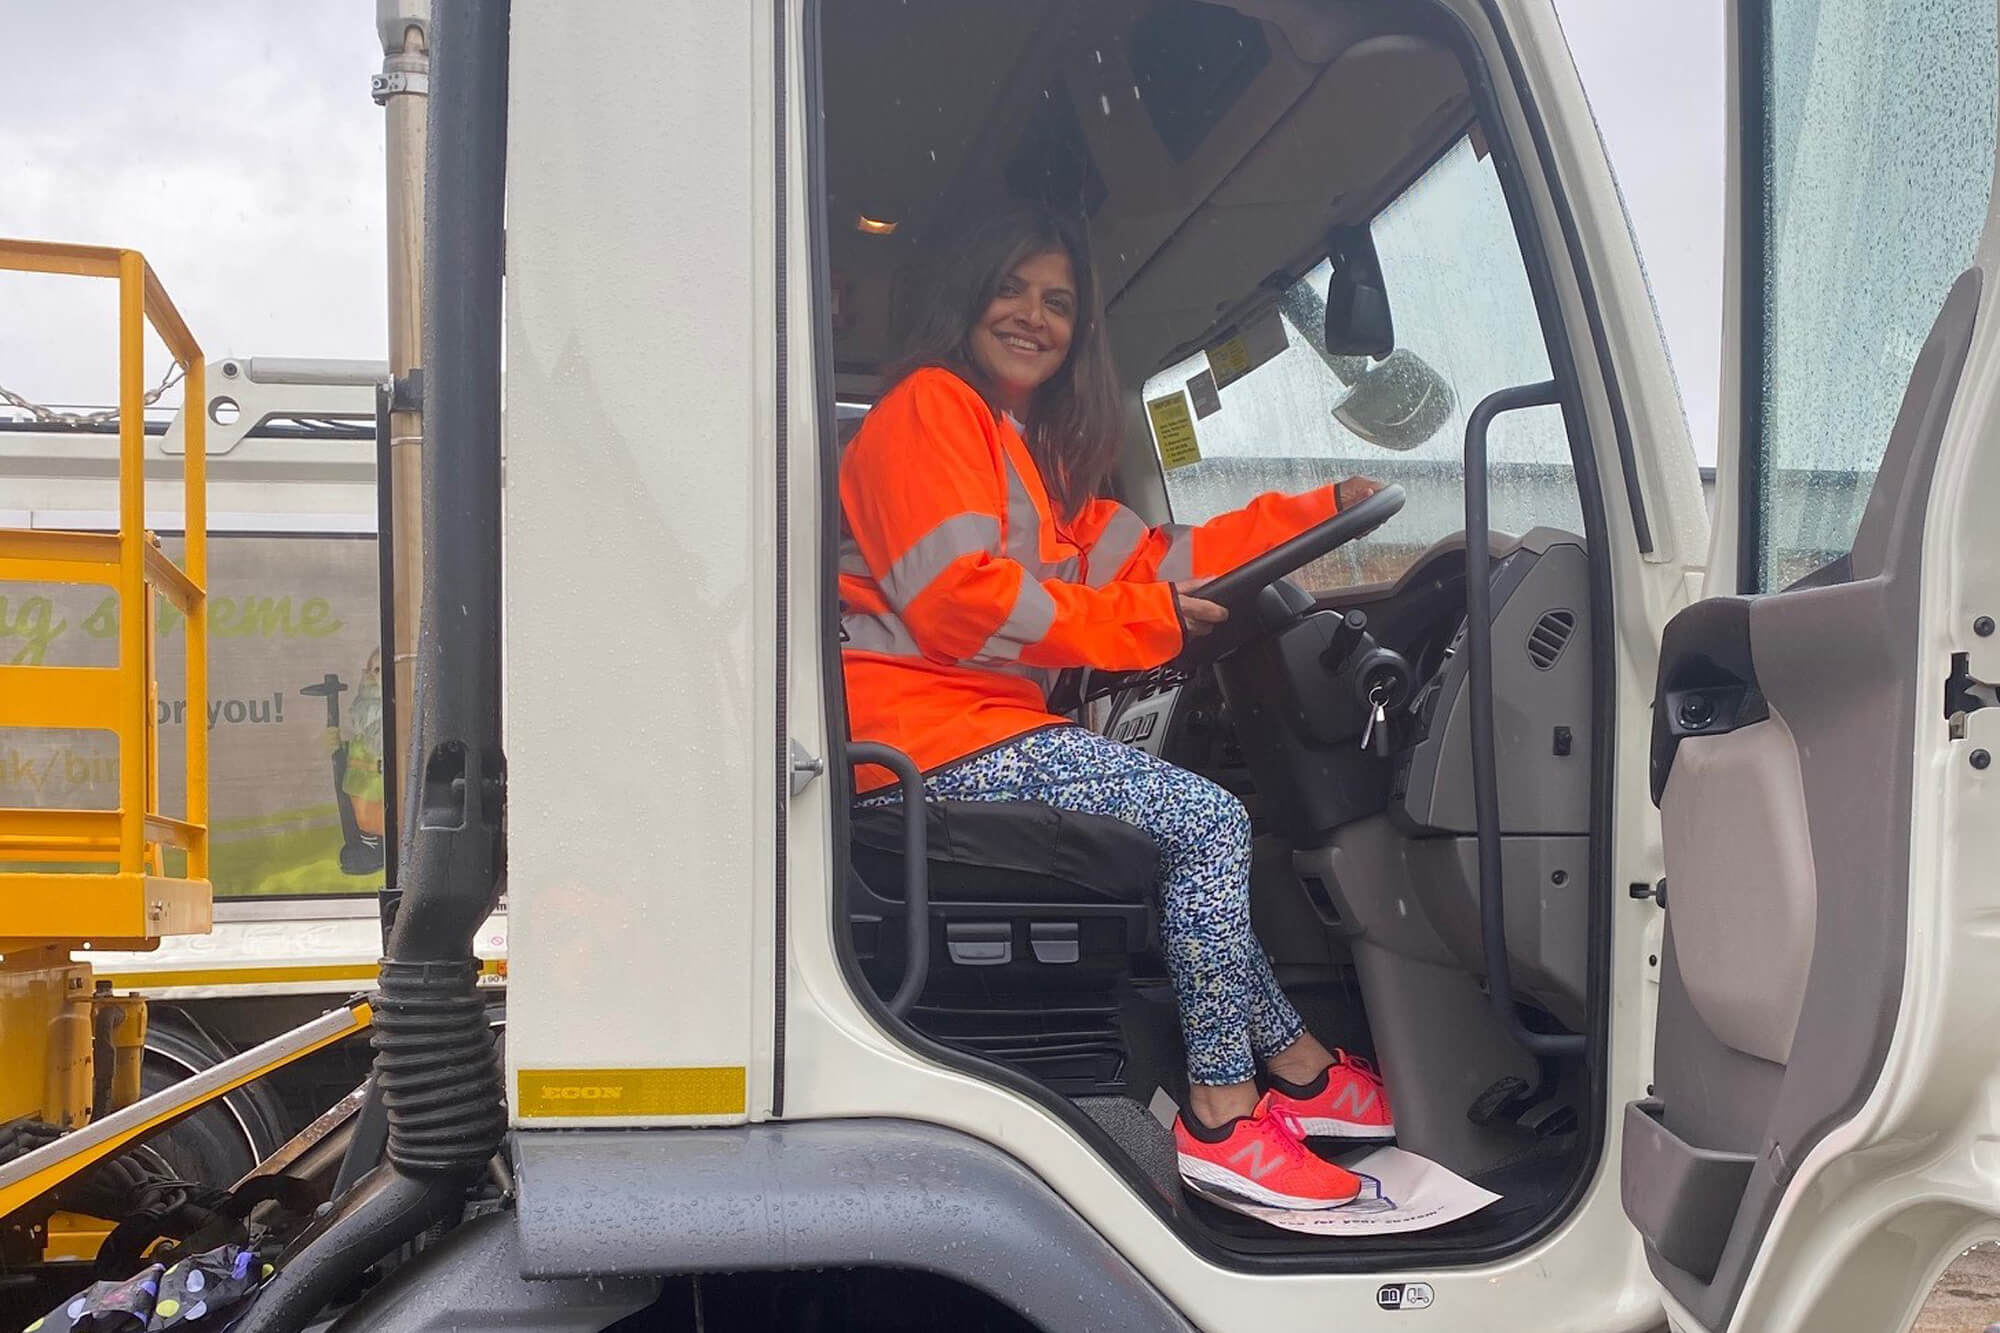 A lady in a orange high vis vest, smiling in the cab of a lorry.